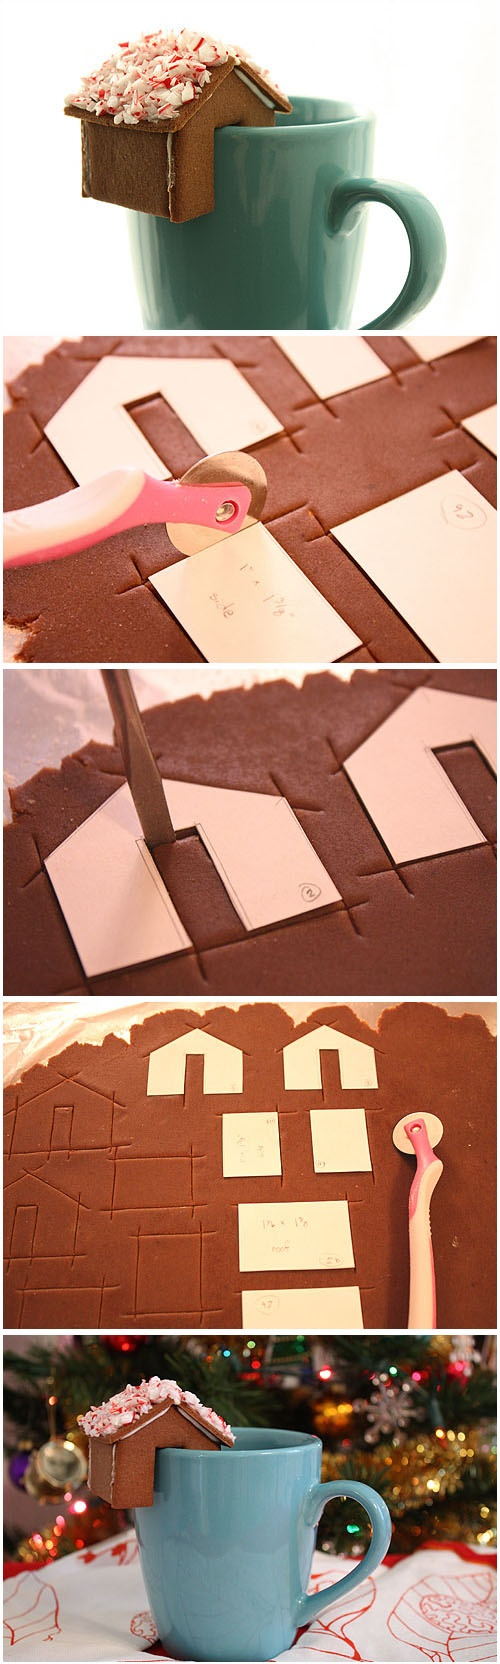 cute gingerbread house idea. Link doesn't lead to it and I couldn't find it, but love the idea. Should be easy to figure out.